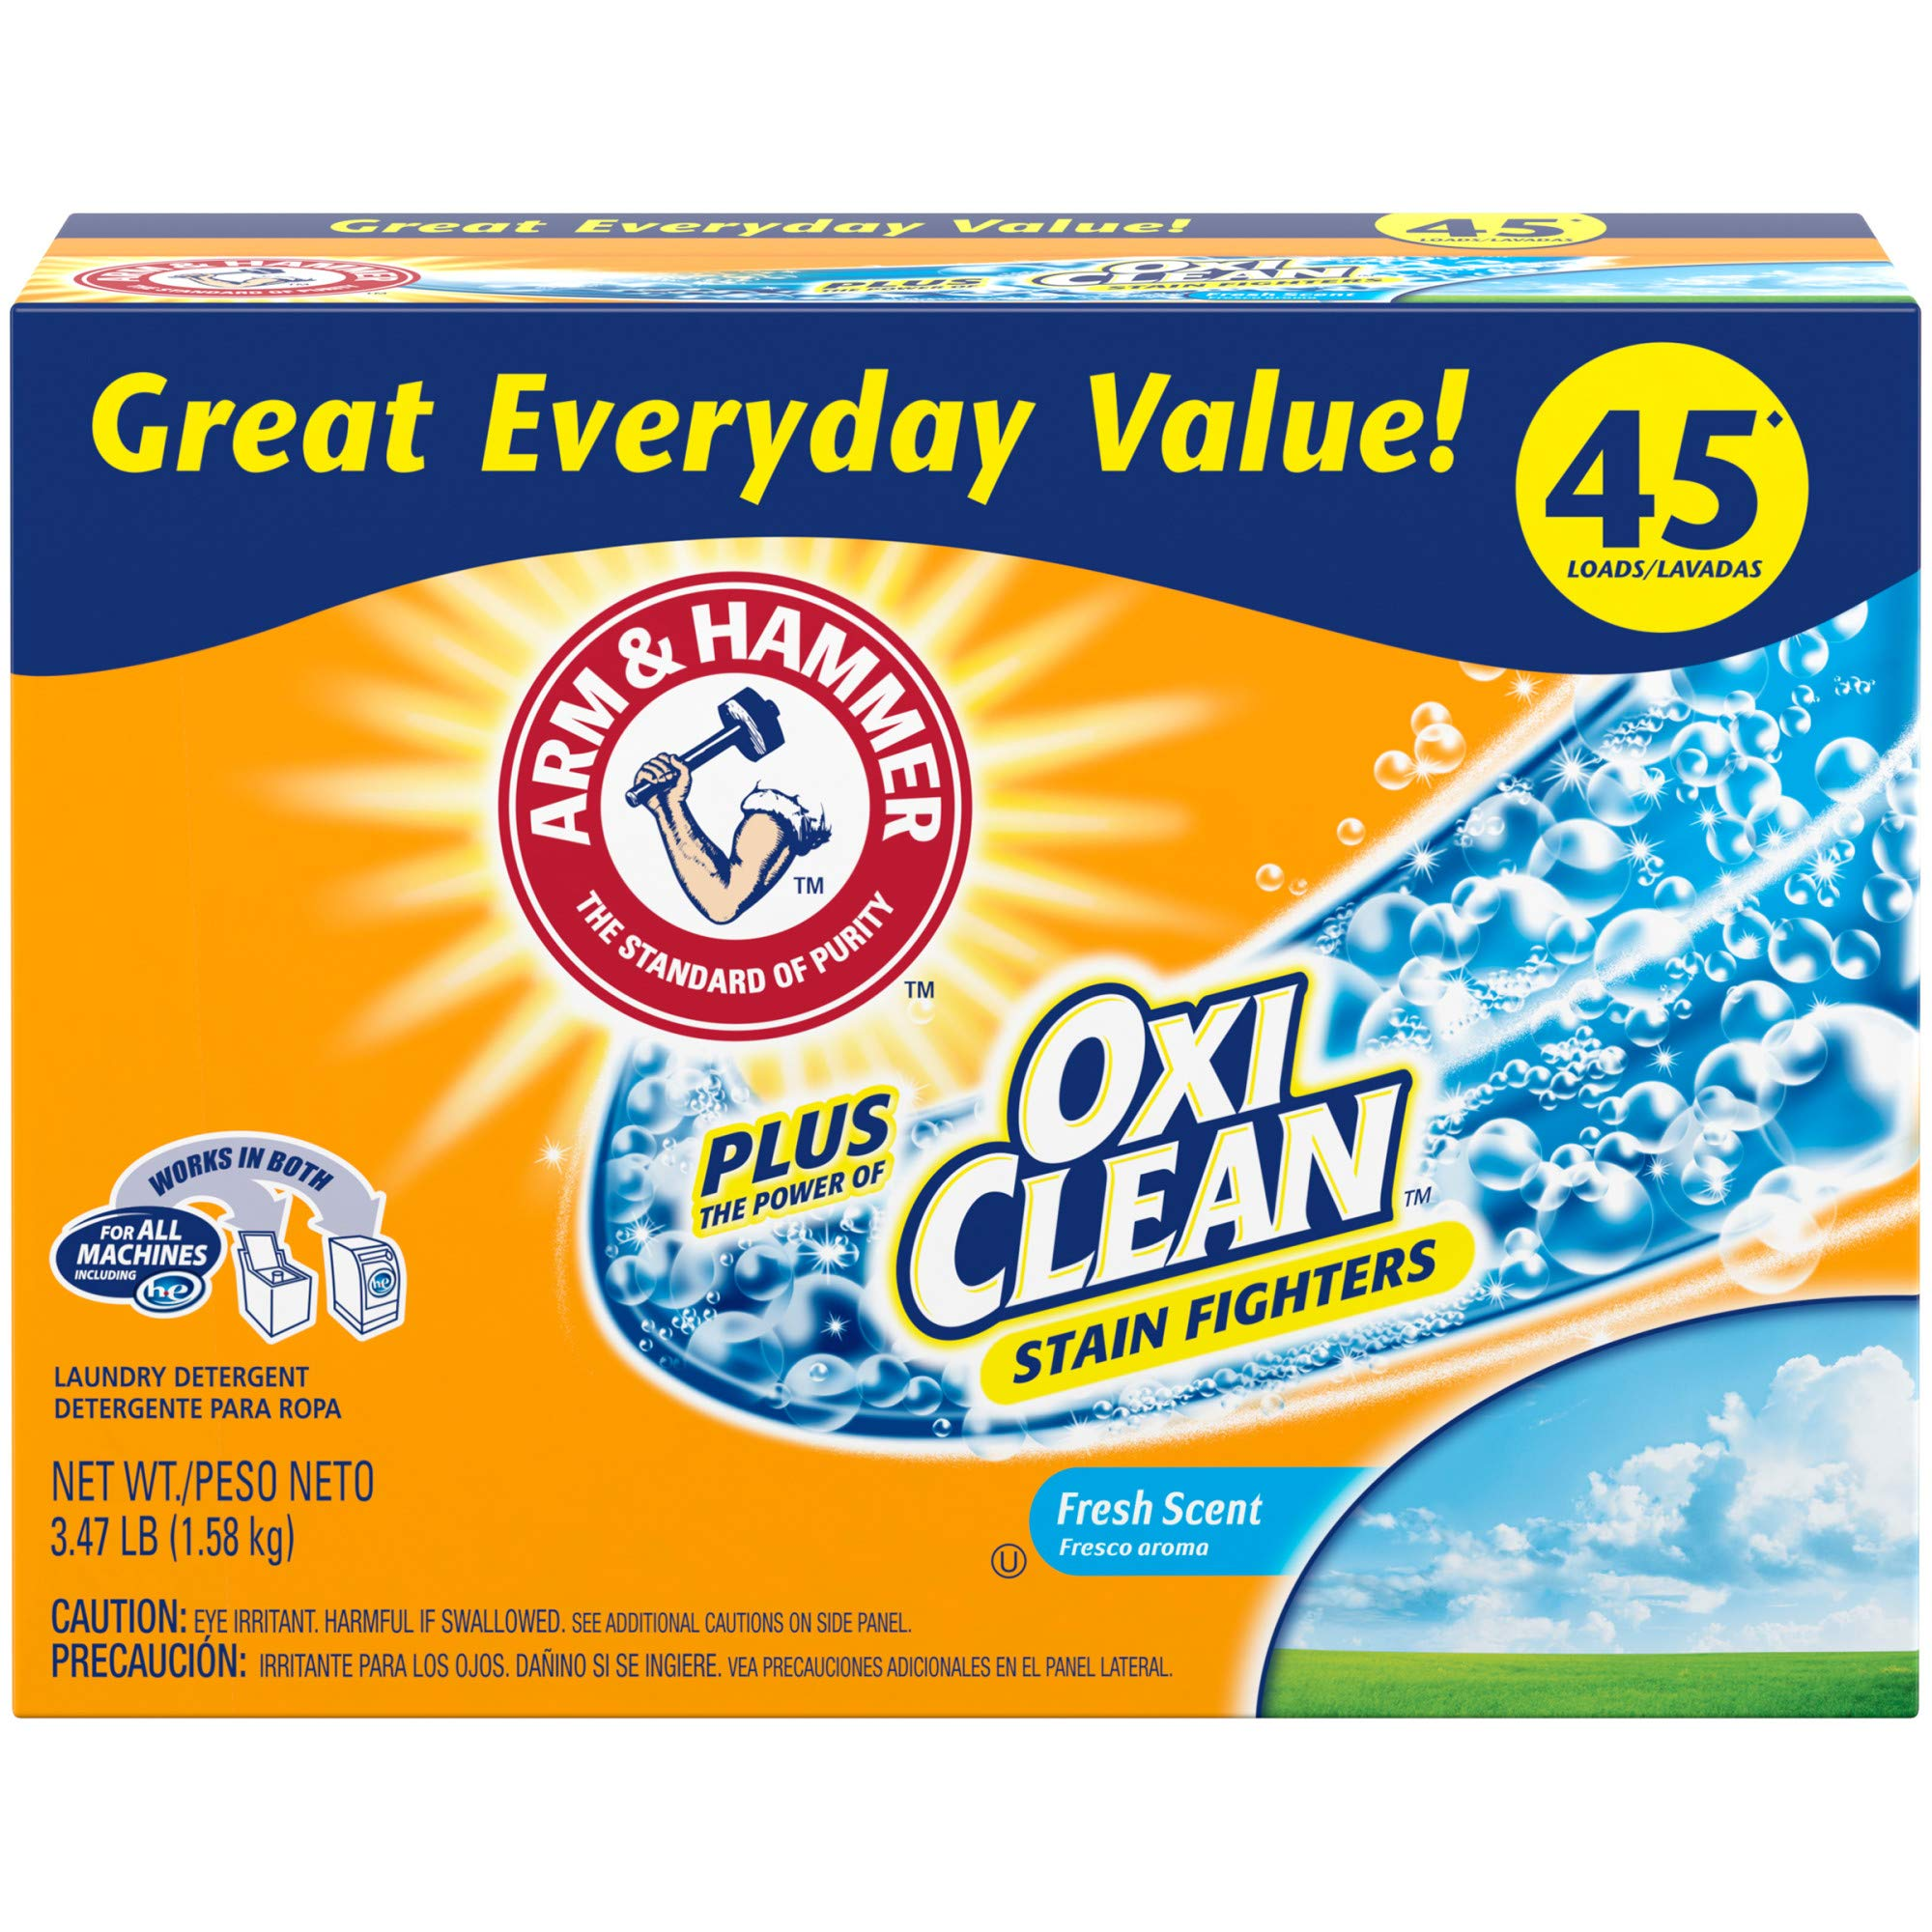 Arm & Hammer Laundry Detergent Plus OxiClean, Fresh Scent, 3.47 Lbs by Arm & Hammer